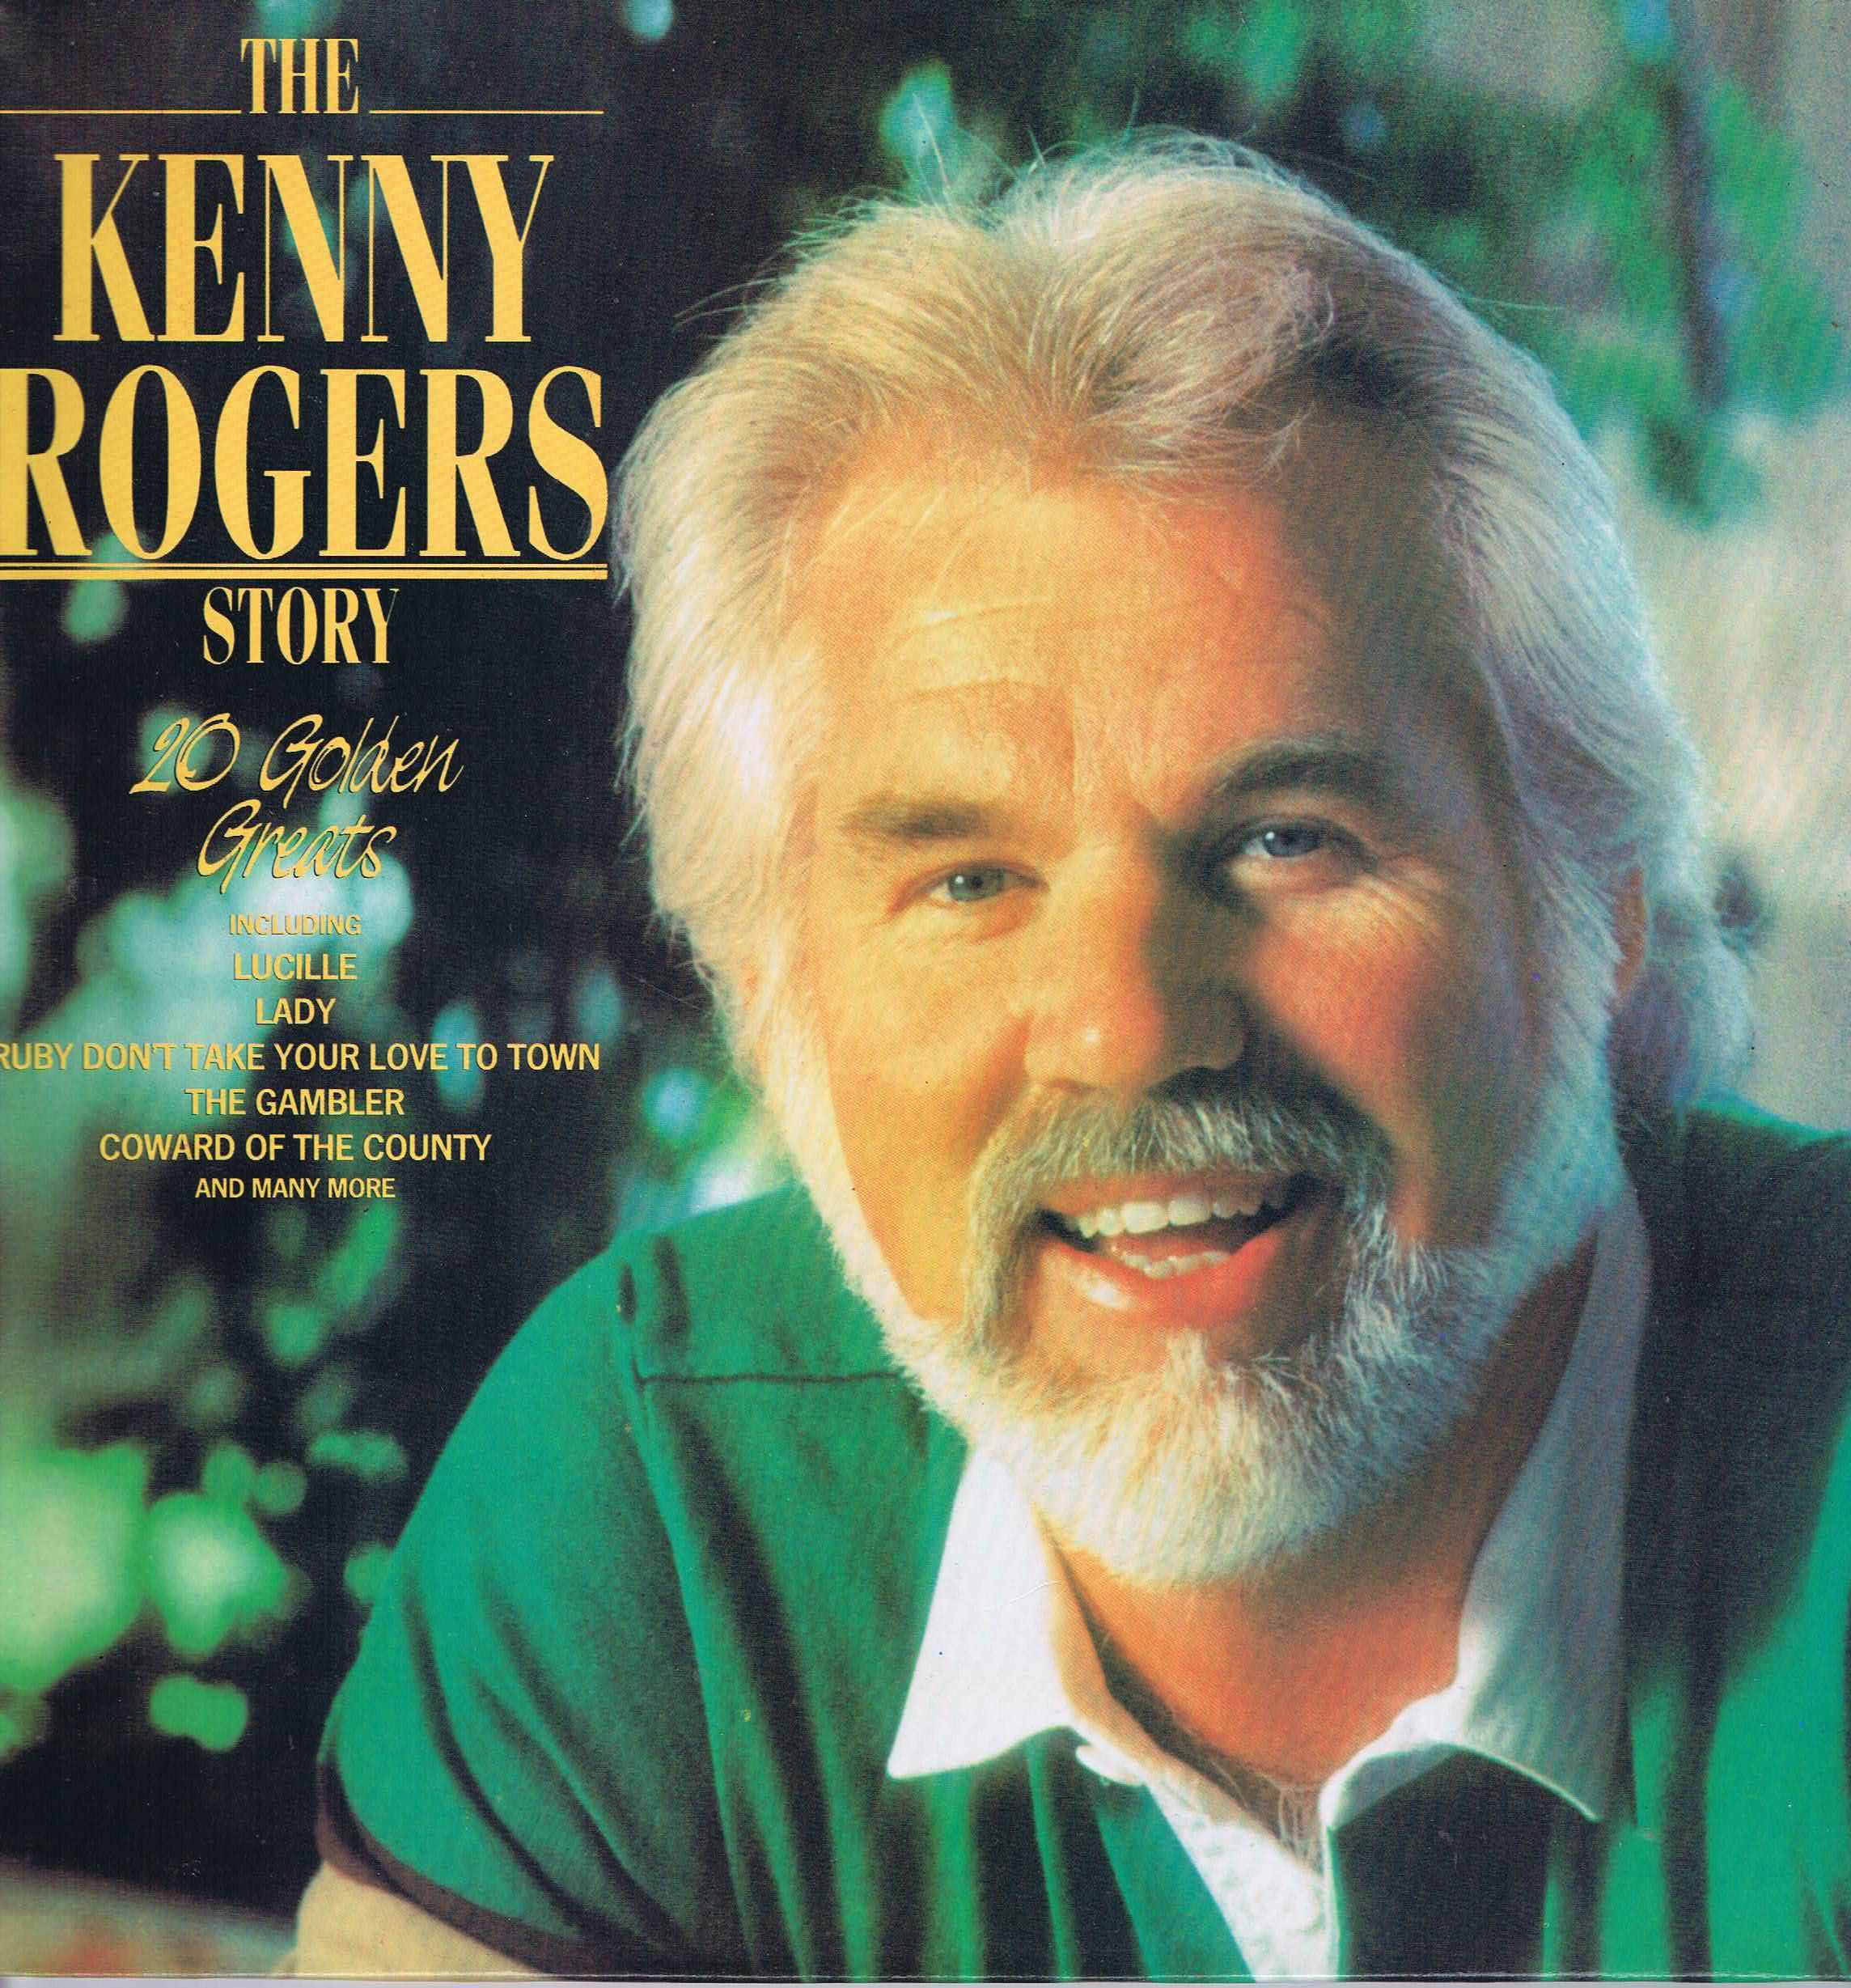 Kenny Rogers The Kenny Rogers Story Emtv 39 Lp Vinyl Record Singer Dolly Parton Kenny Rogers Music